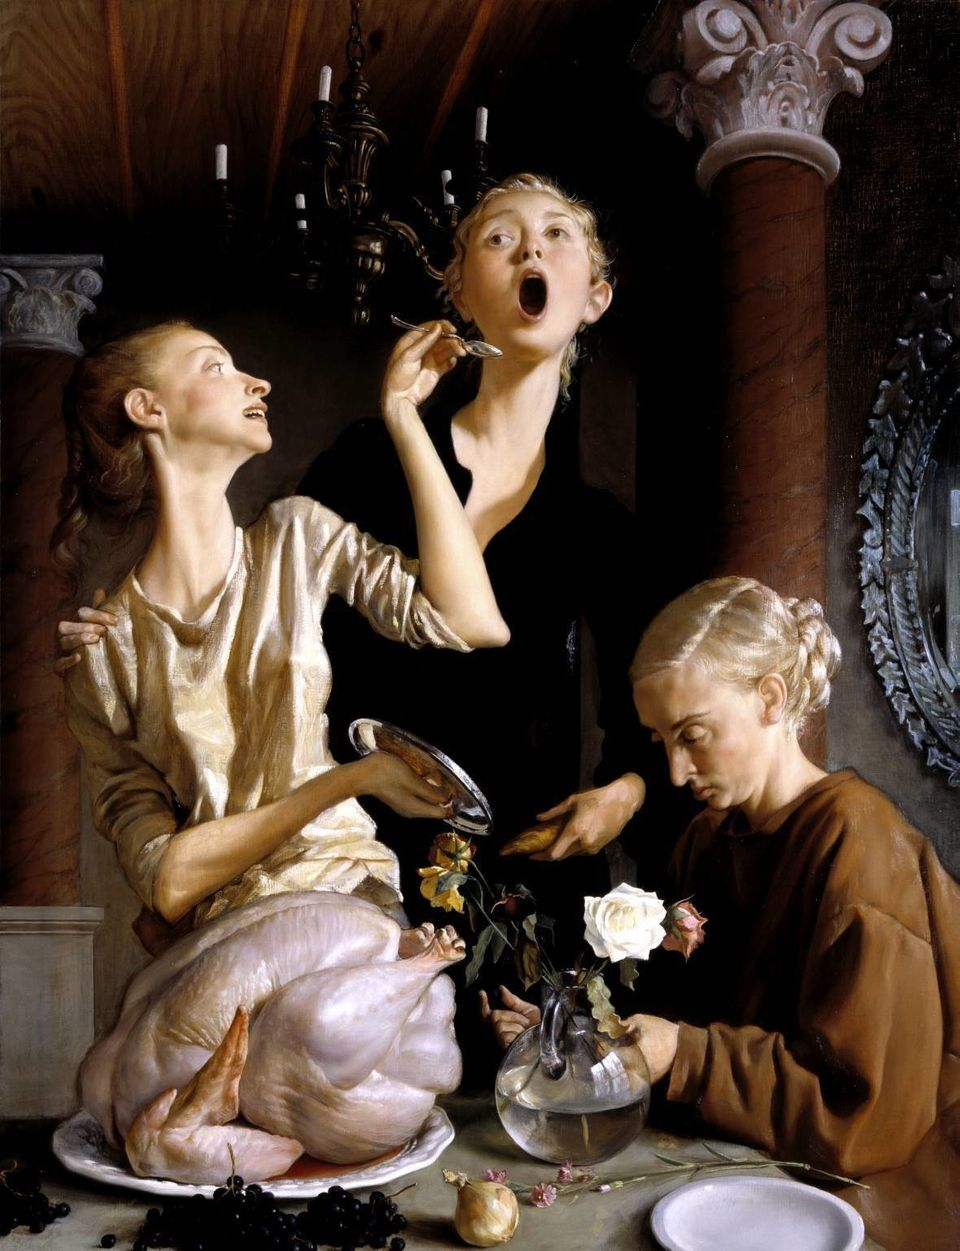 """Is this what your Turkey face looks like?  Image: John Currin, """"Thanksgiving,"""" 2003"""